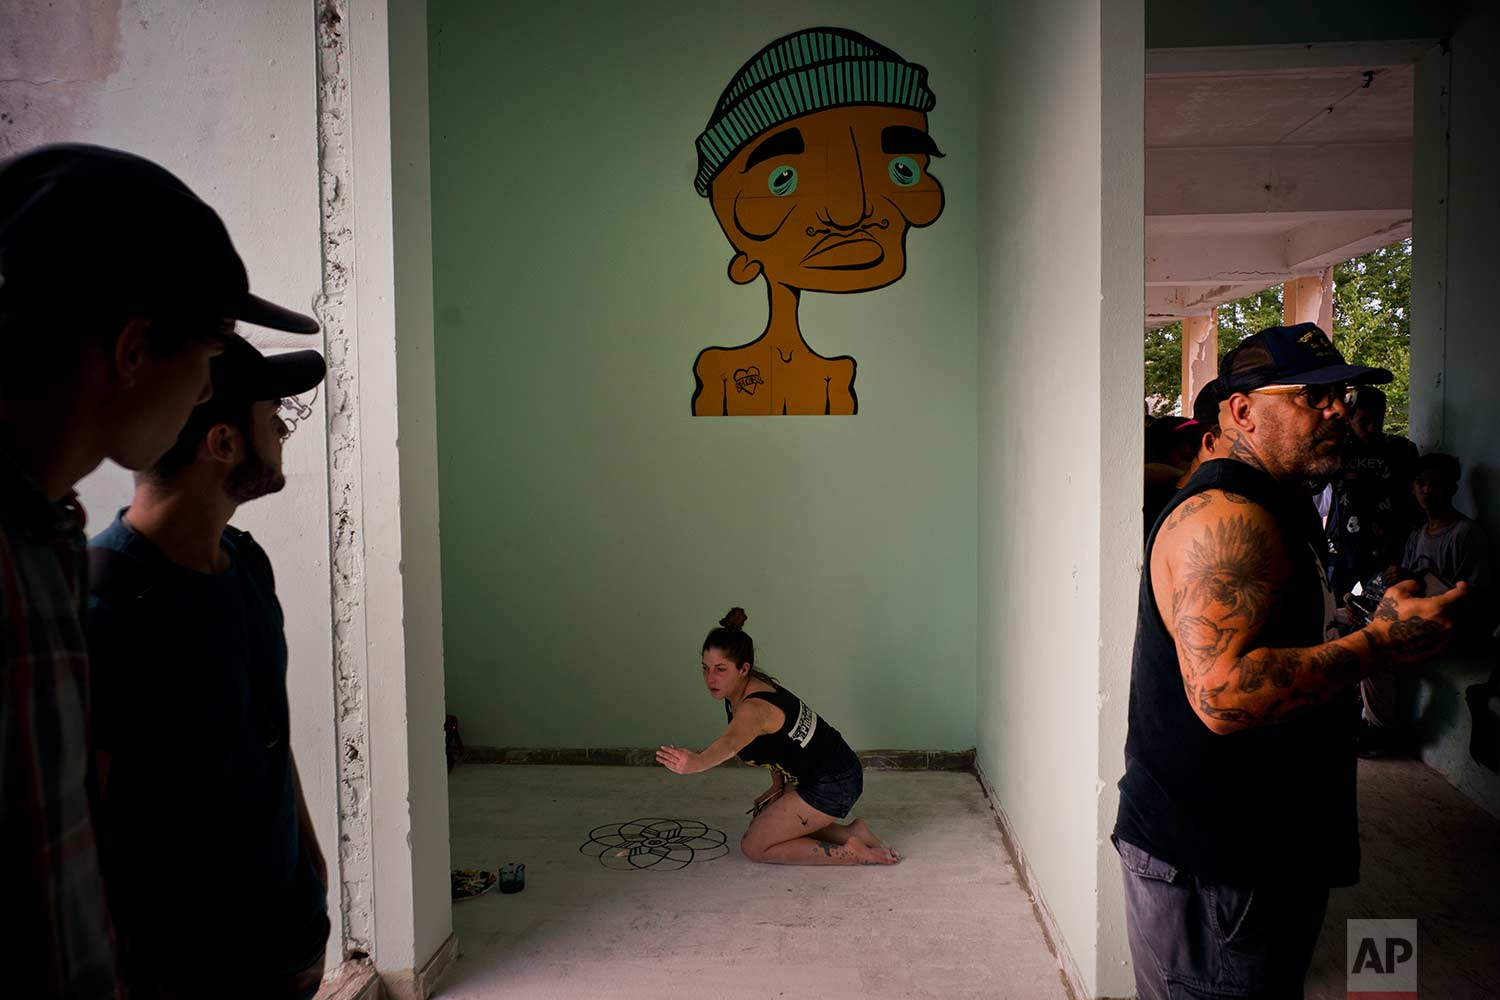 In this Jan. 11, 2018 photo, an artist decorates the floor with a mural during the inauguration of a new recreational space for skateboarders, created in an abandoned gym at the Educational complex Ciudad Libertad, a former military barracks that the late Fidel Castro turned into a school complex after the revolution in Havana, Cuba. (AP Photo/Ramon Espinosa)